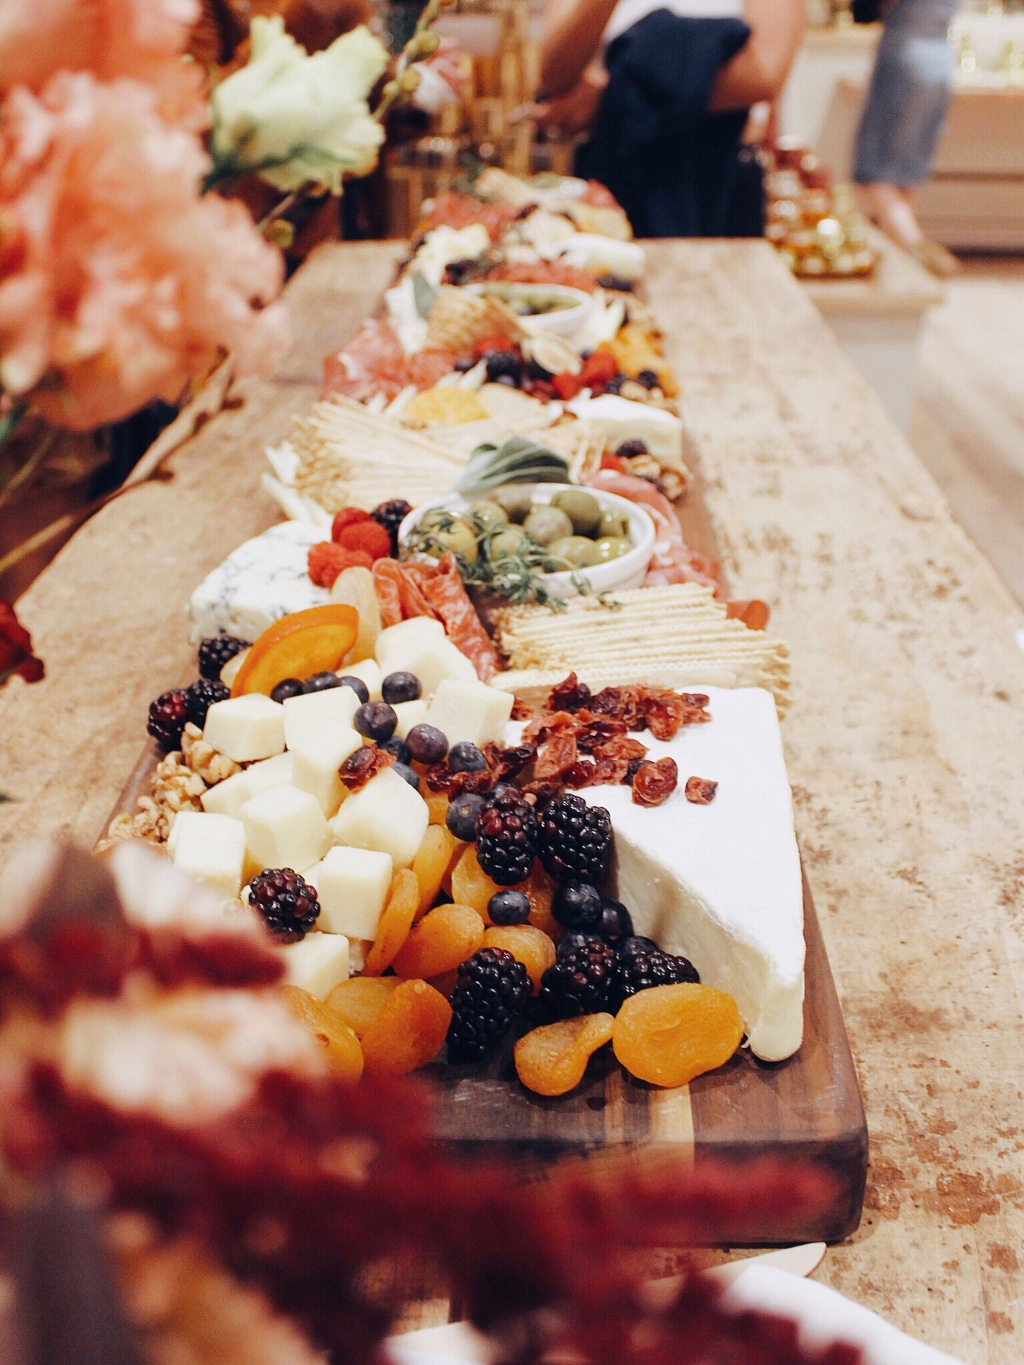 Want to make your cocktail hour or wedding tables stand out? We provide a wide variety of Cheese Tables, Grazing Tables, Cheese Board